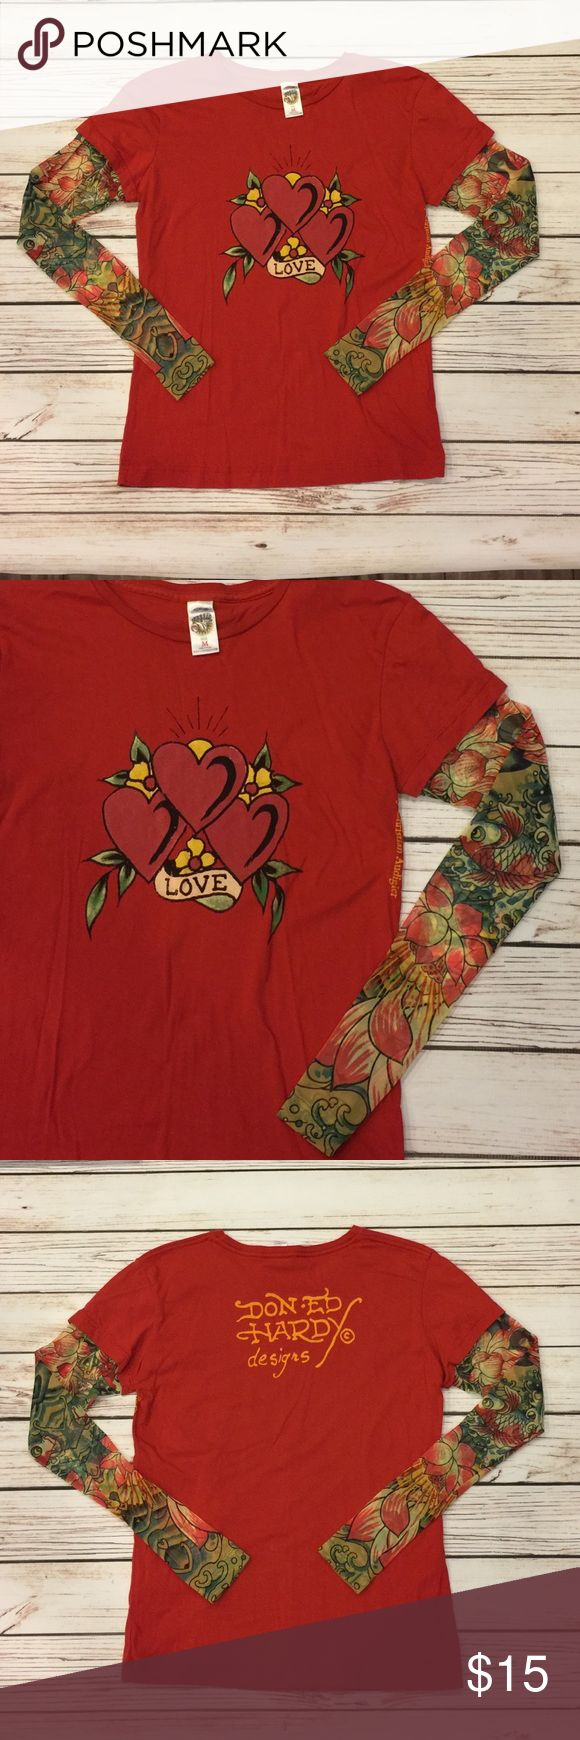 Ed Hardy heart coy fish t shirt red, tattoo sleeve Perfect for Valentine's Day, red Ed Hardy heart design t- Shirt.  Long coy fish design tattoo sleeves, SZ M. Ed Hardy Tops Tees - Long Sleeve